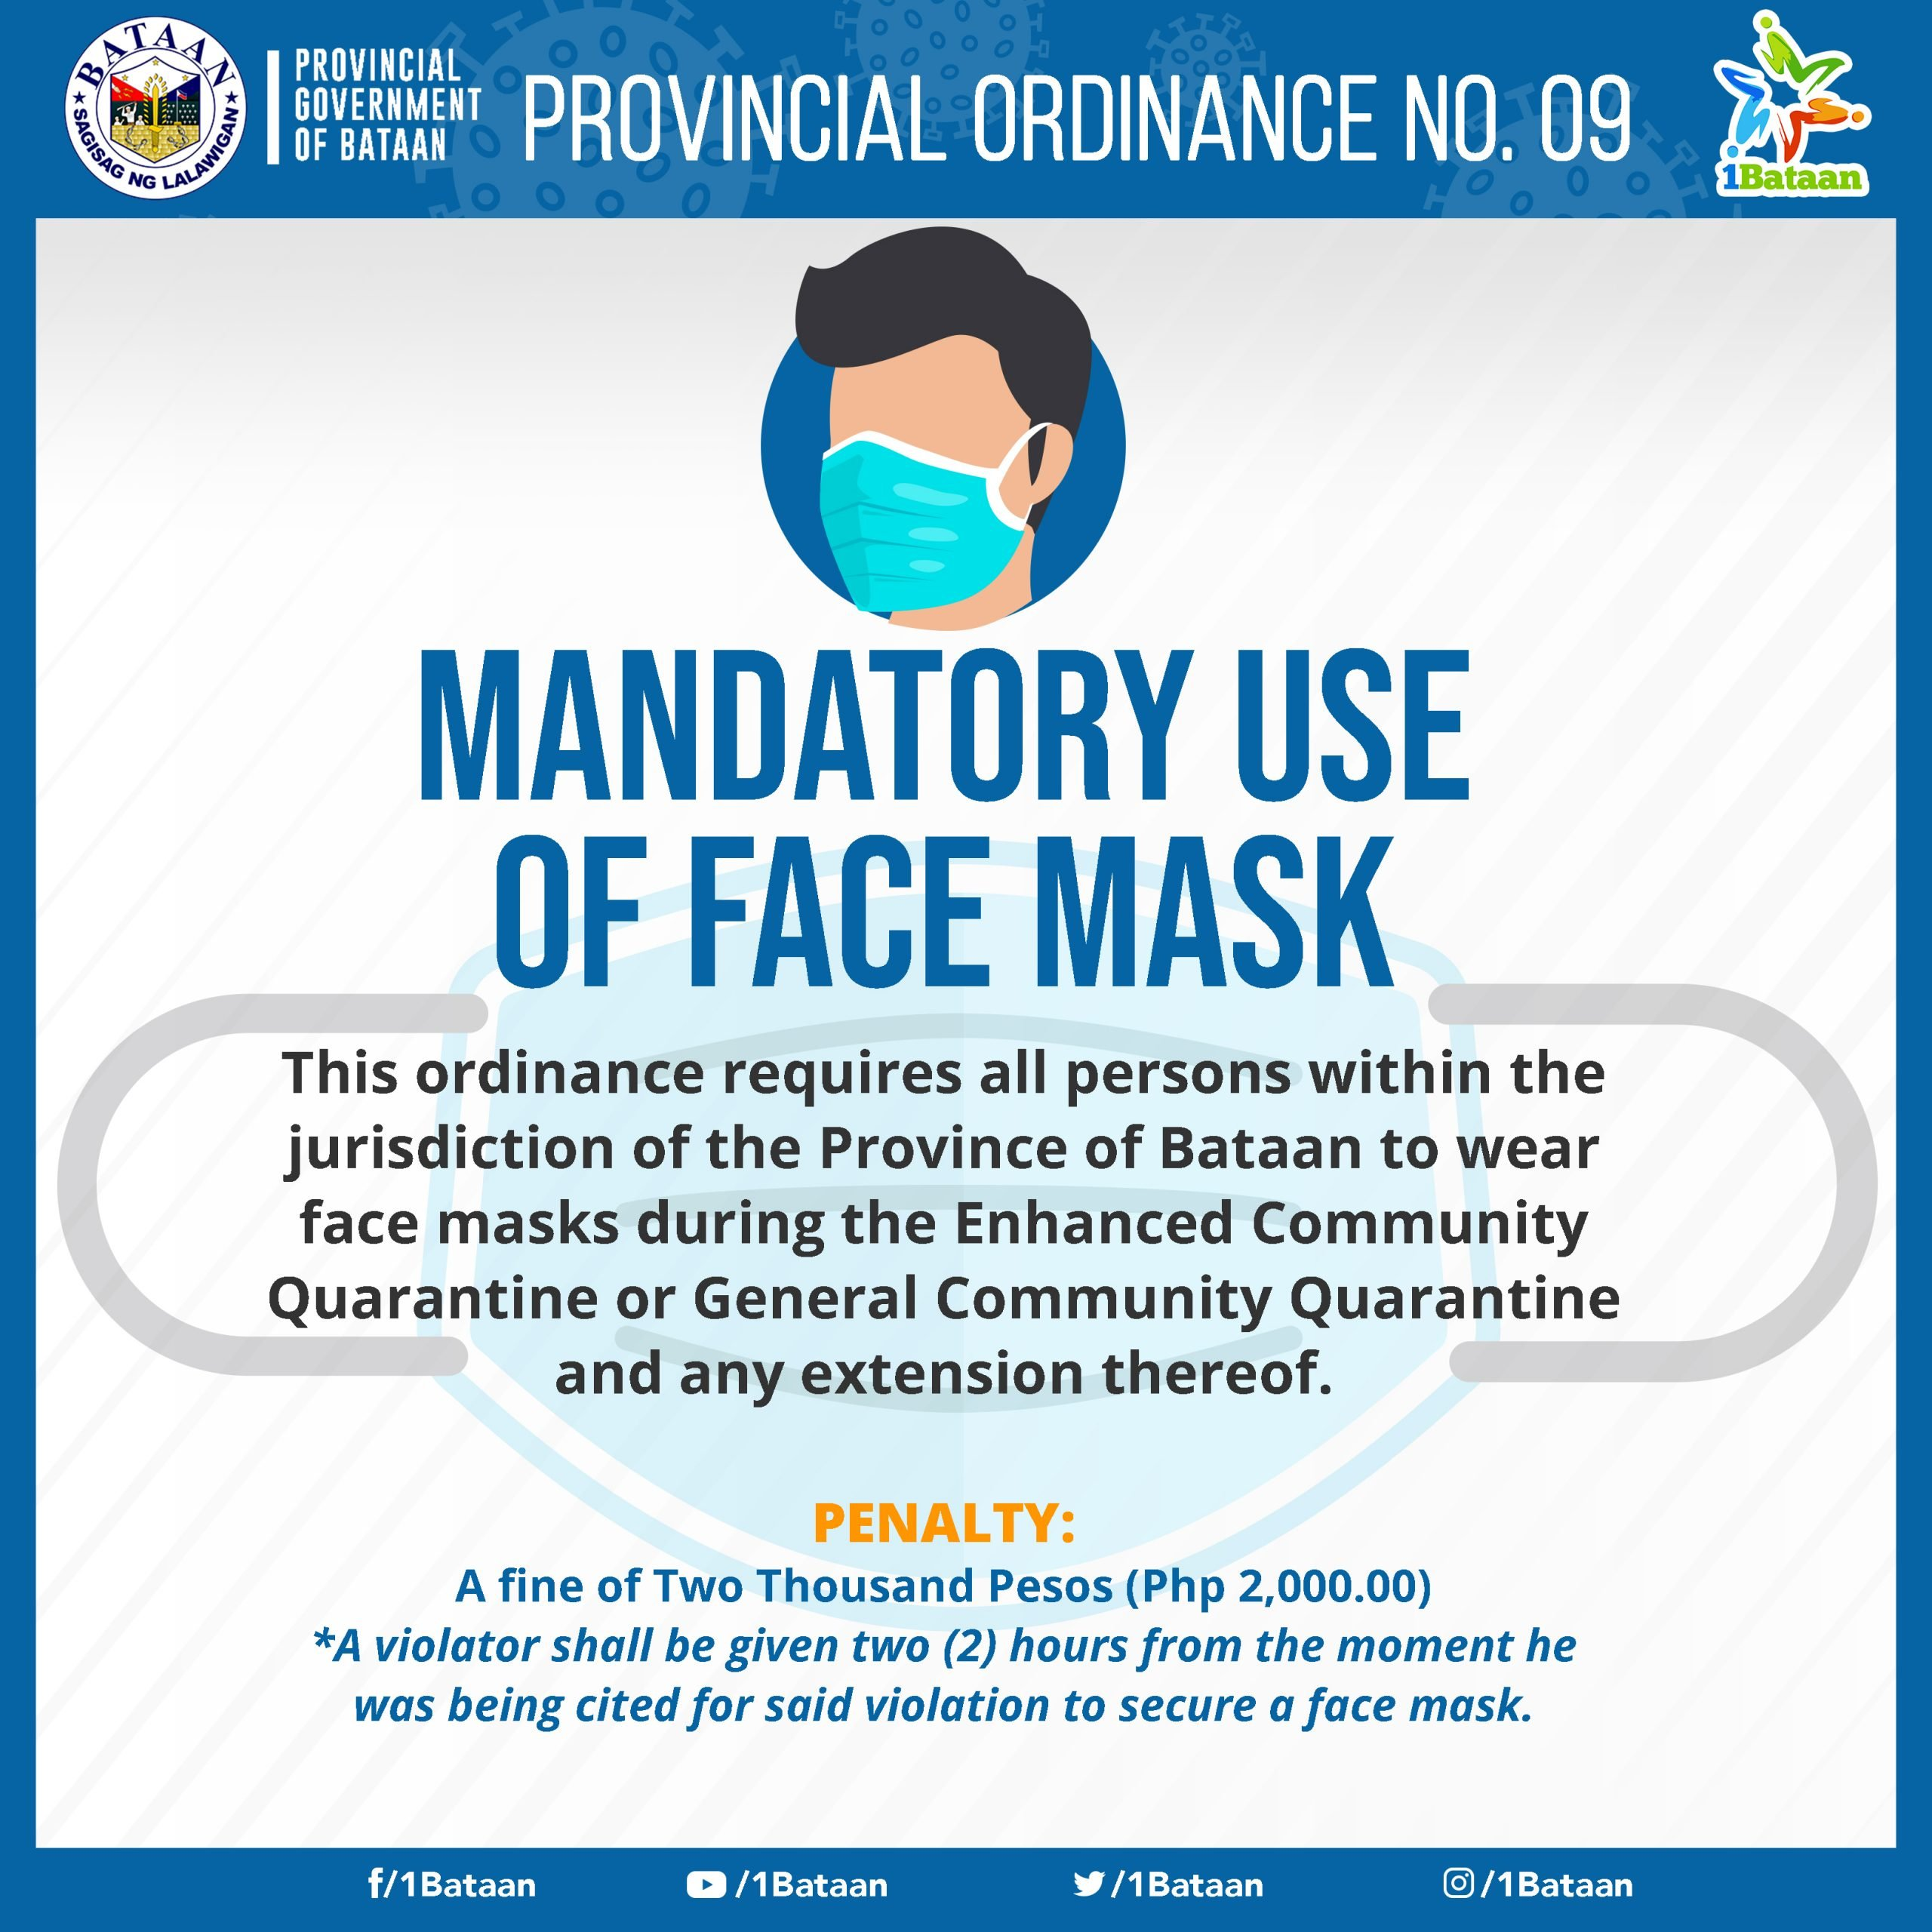 FACE MASK ORDINANCE NO 09 -